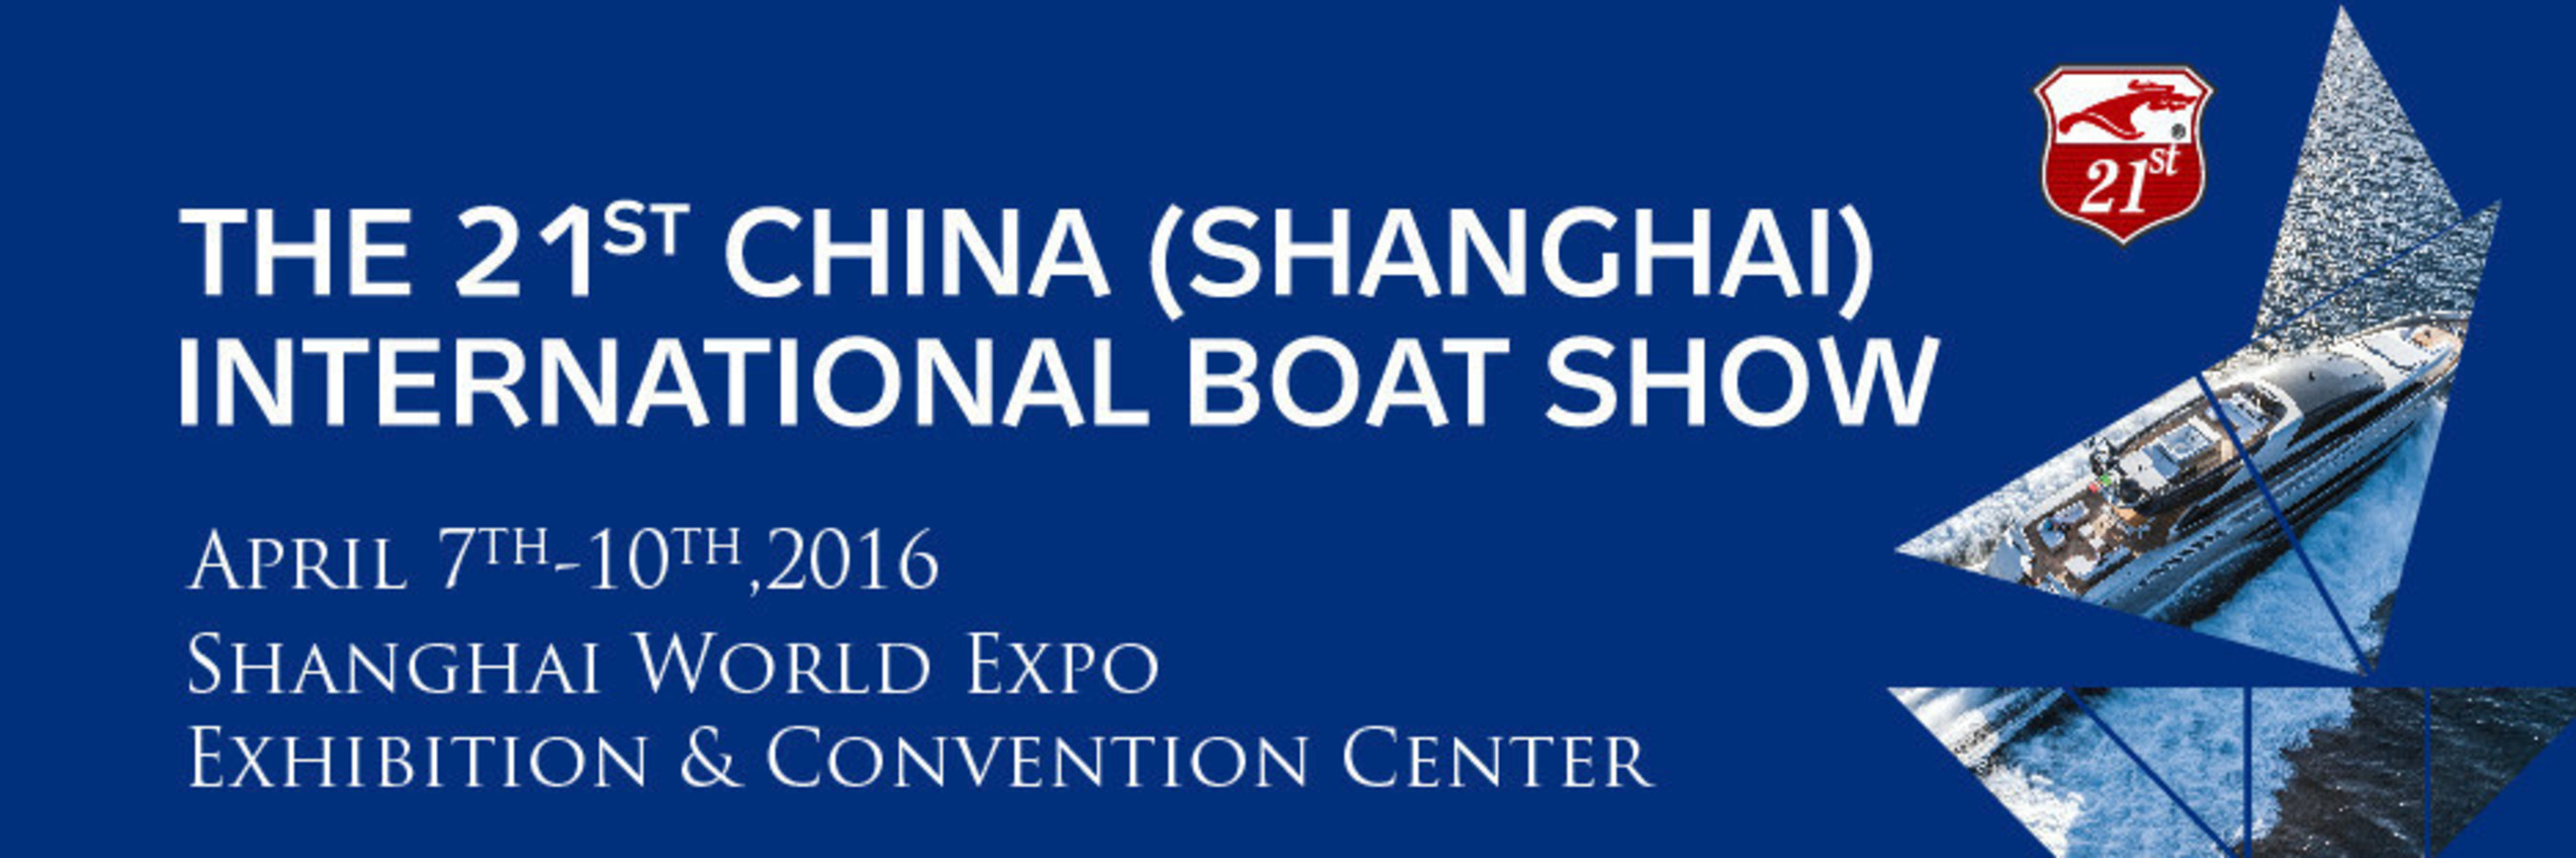 The 21st China Internaitonal Boat Show